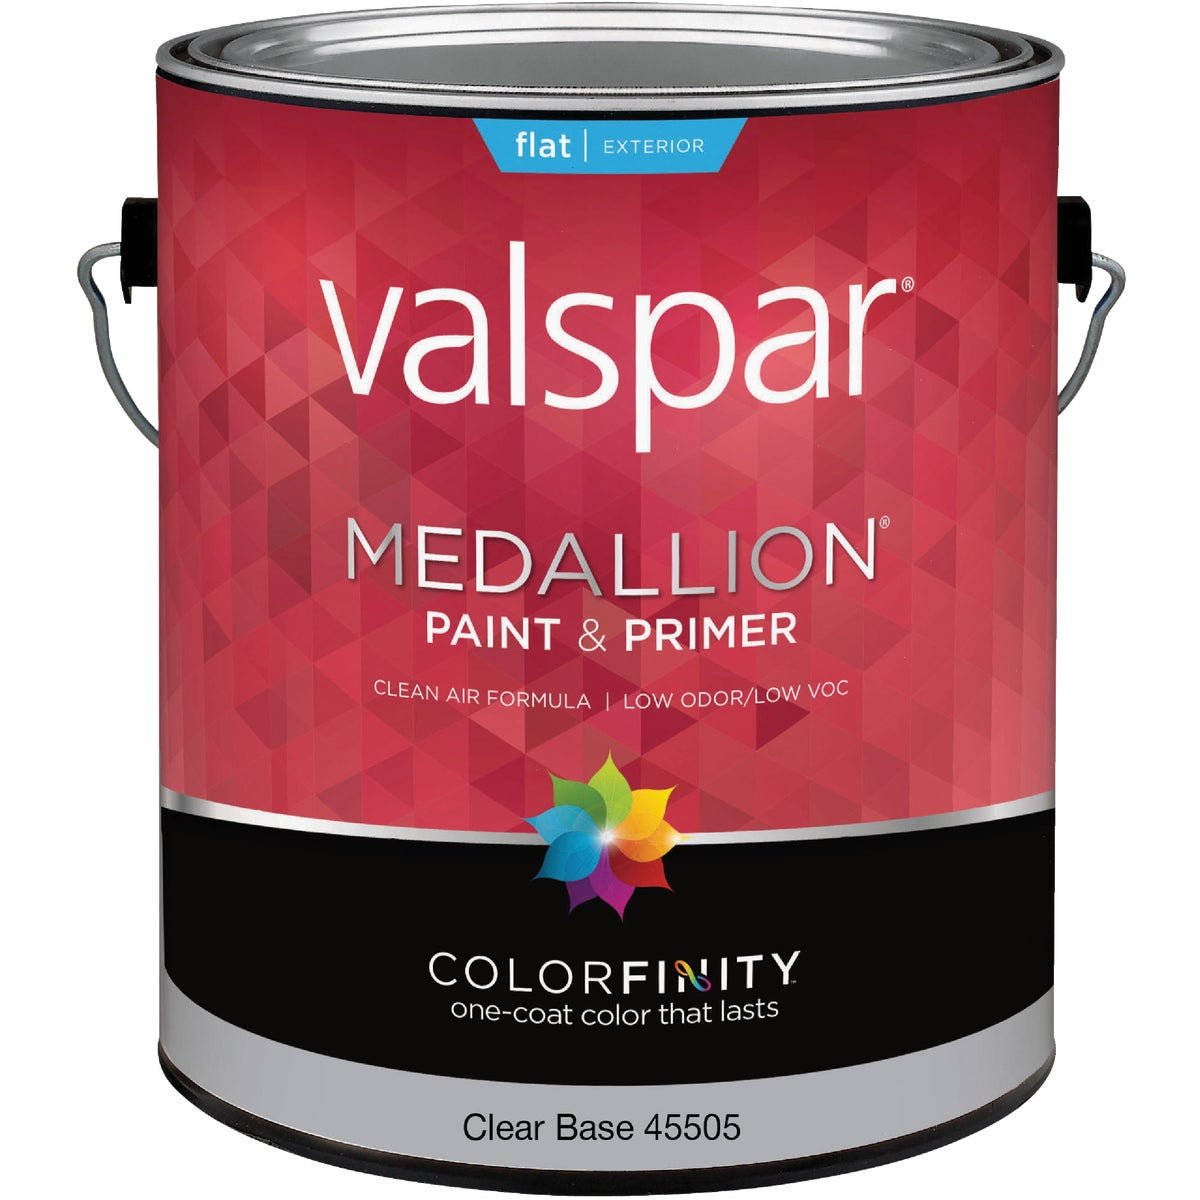 EXT FLAT CLEAR BS PAINT - 027.0045505.007 by Valspar Corp